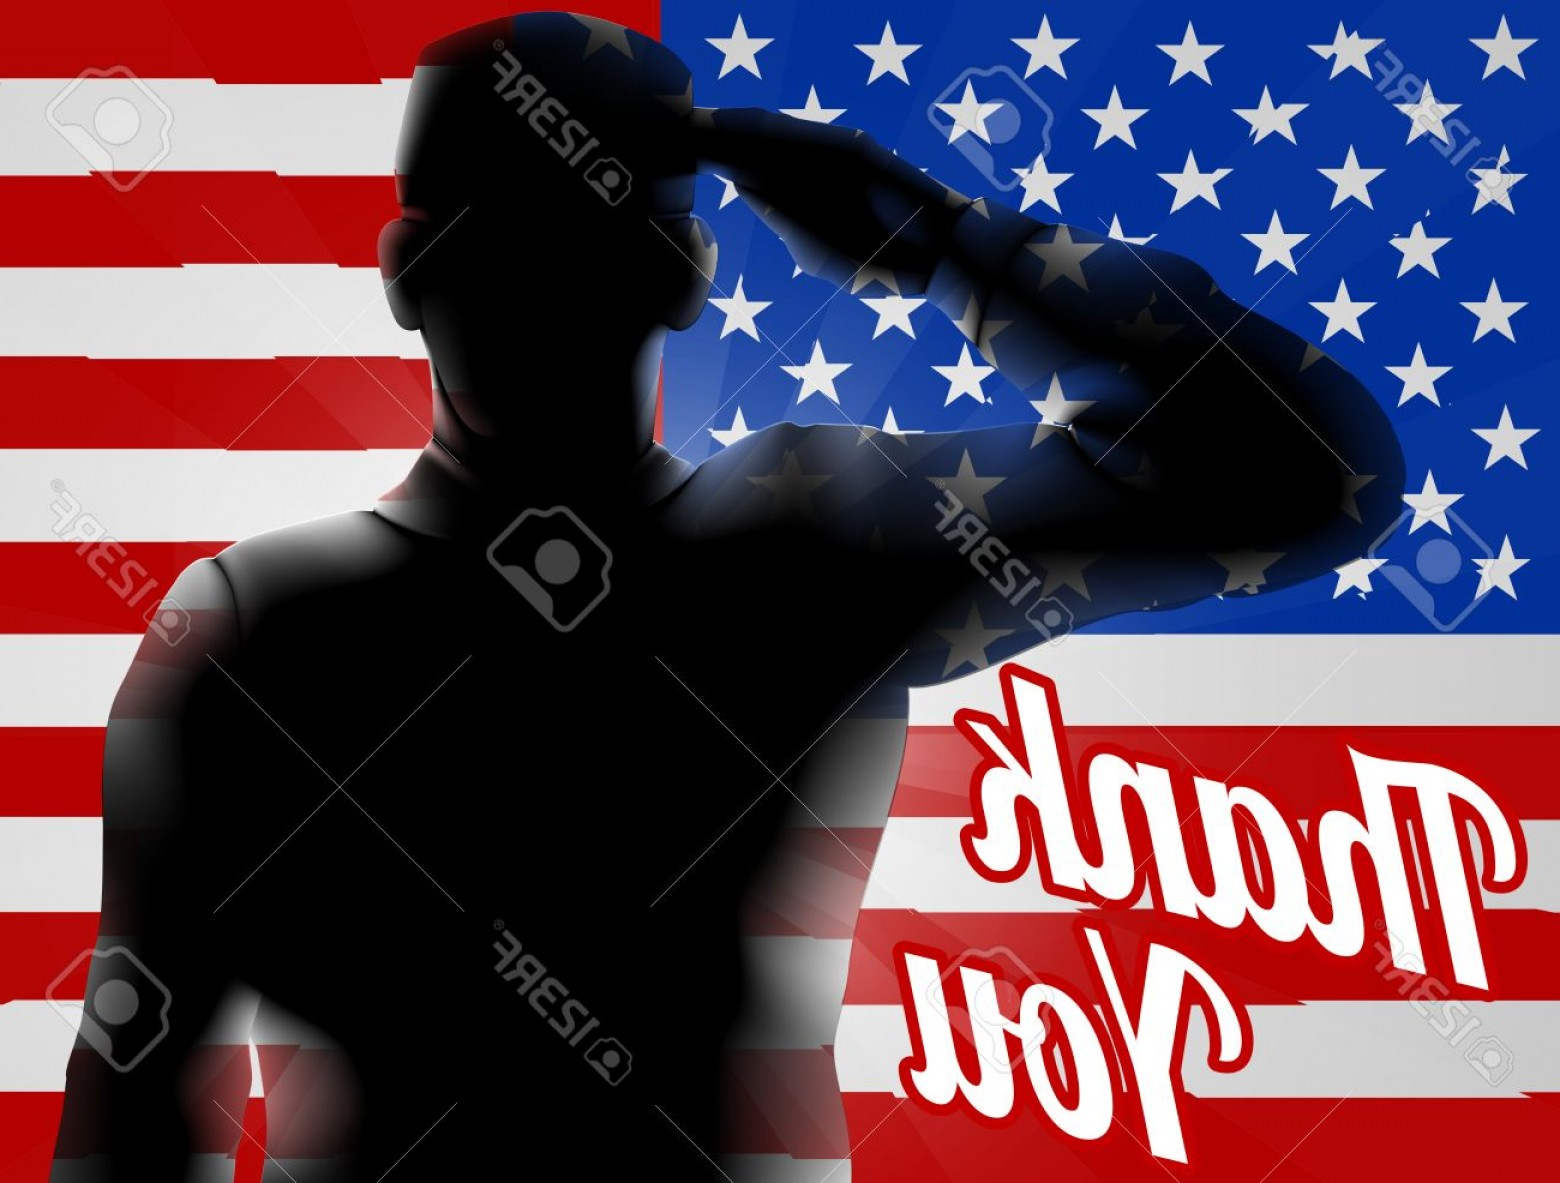 Coca-Cola Vector Silhouette: Photostock Vector A Silhouette Soldier Saluting With American Flag In The Background With Thank You Design For Memoria